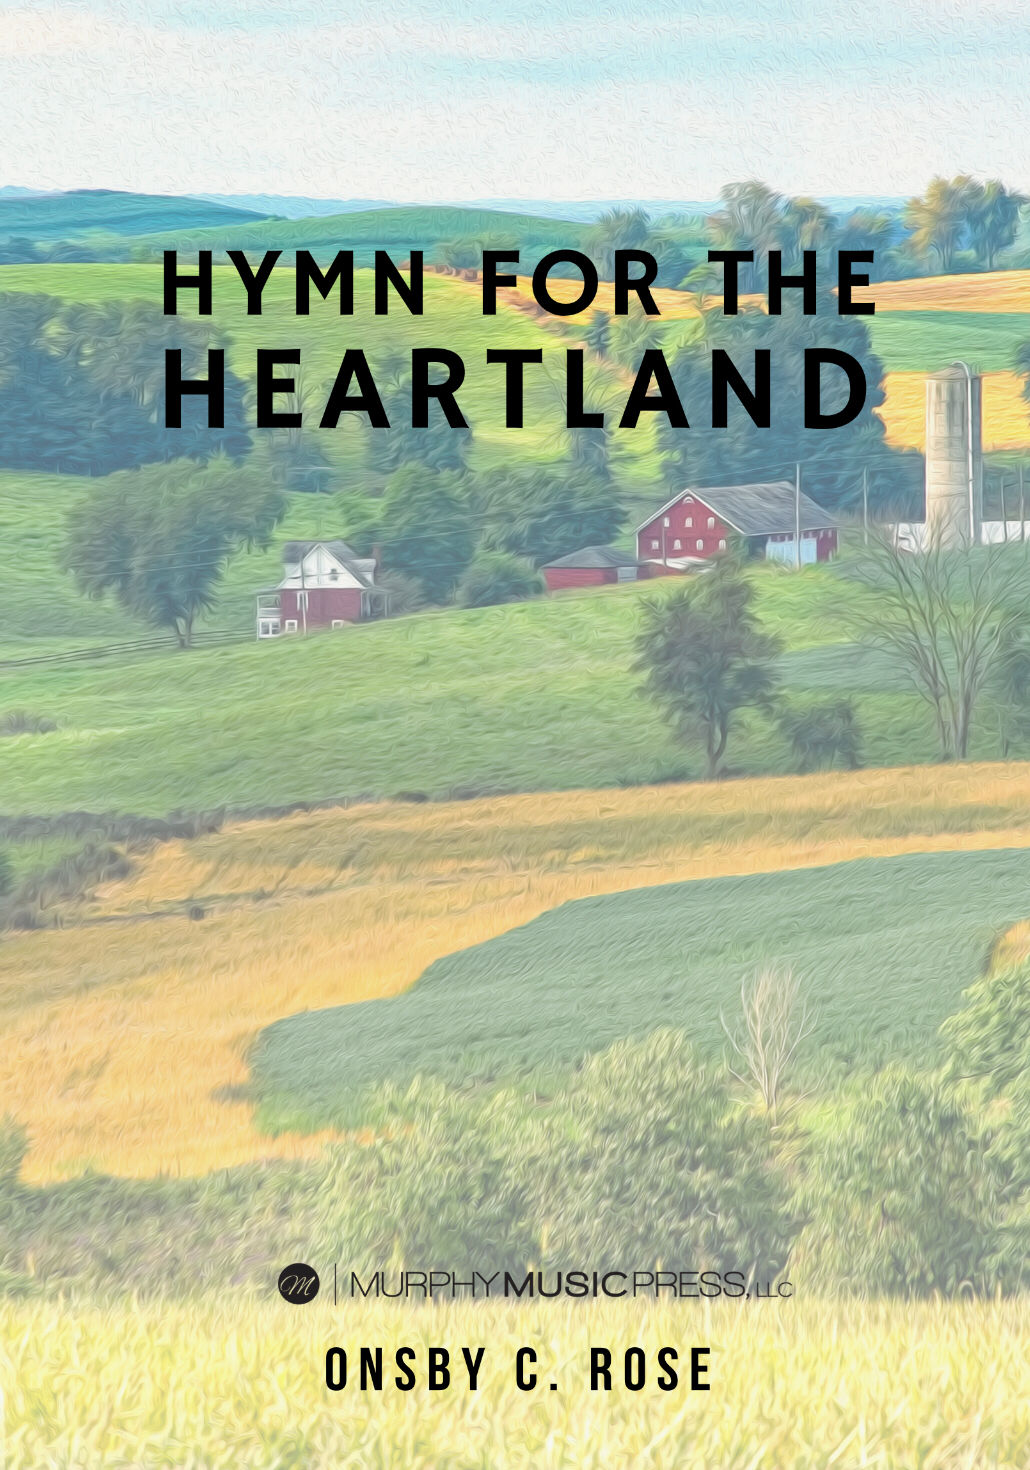 Hymn For The Heartland by Onsby C. Rose